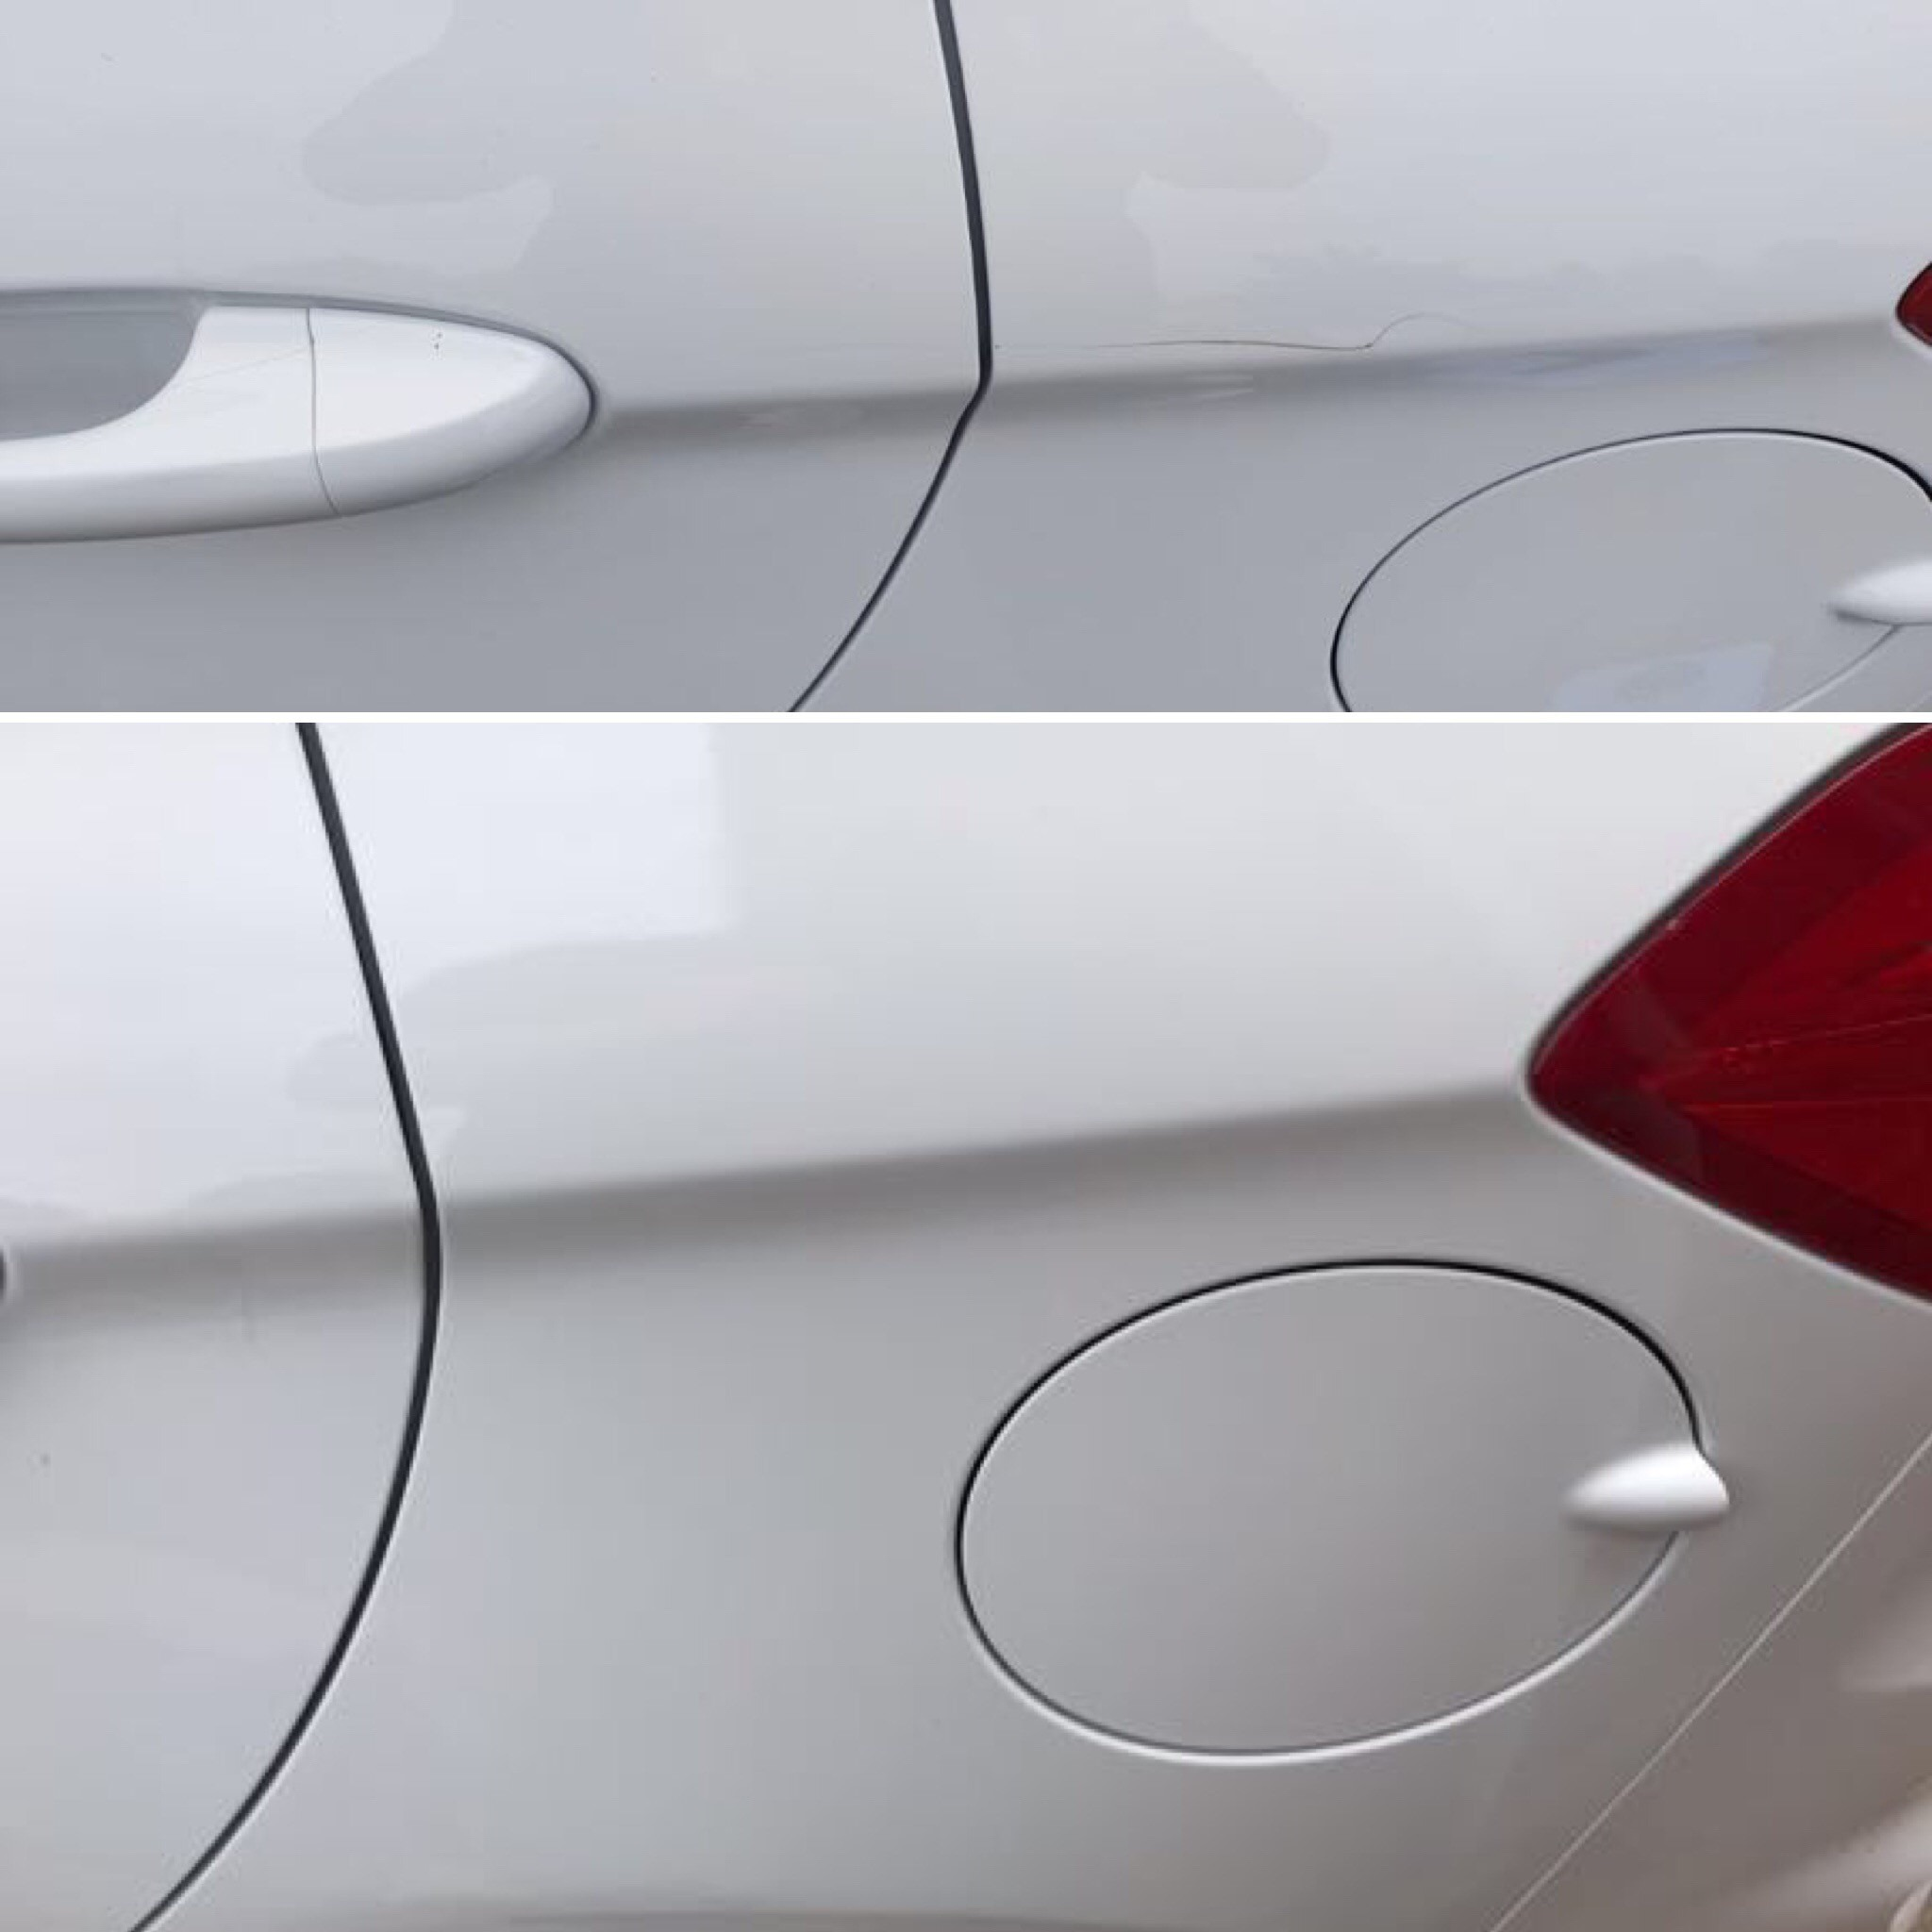 car repair for minor damage, car scratch repair bristol